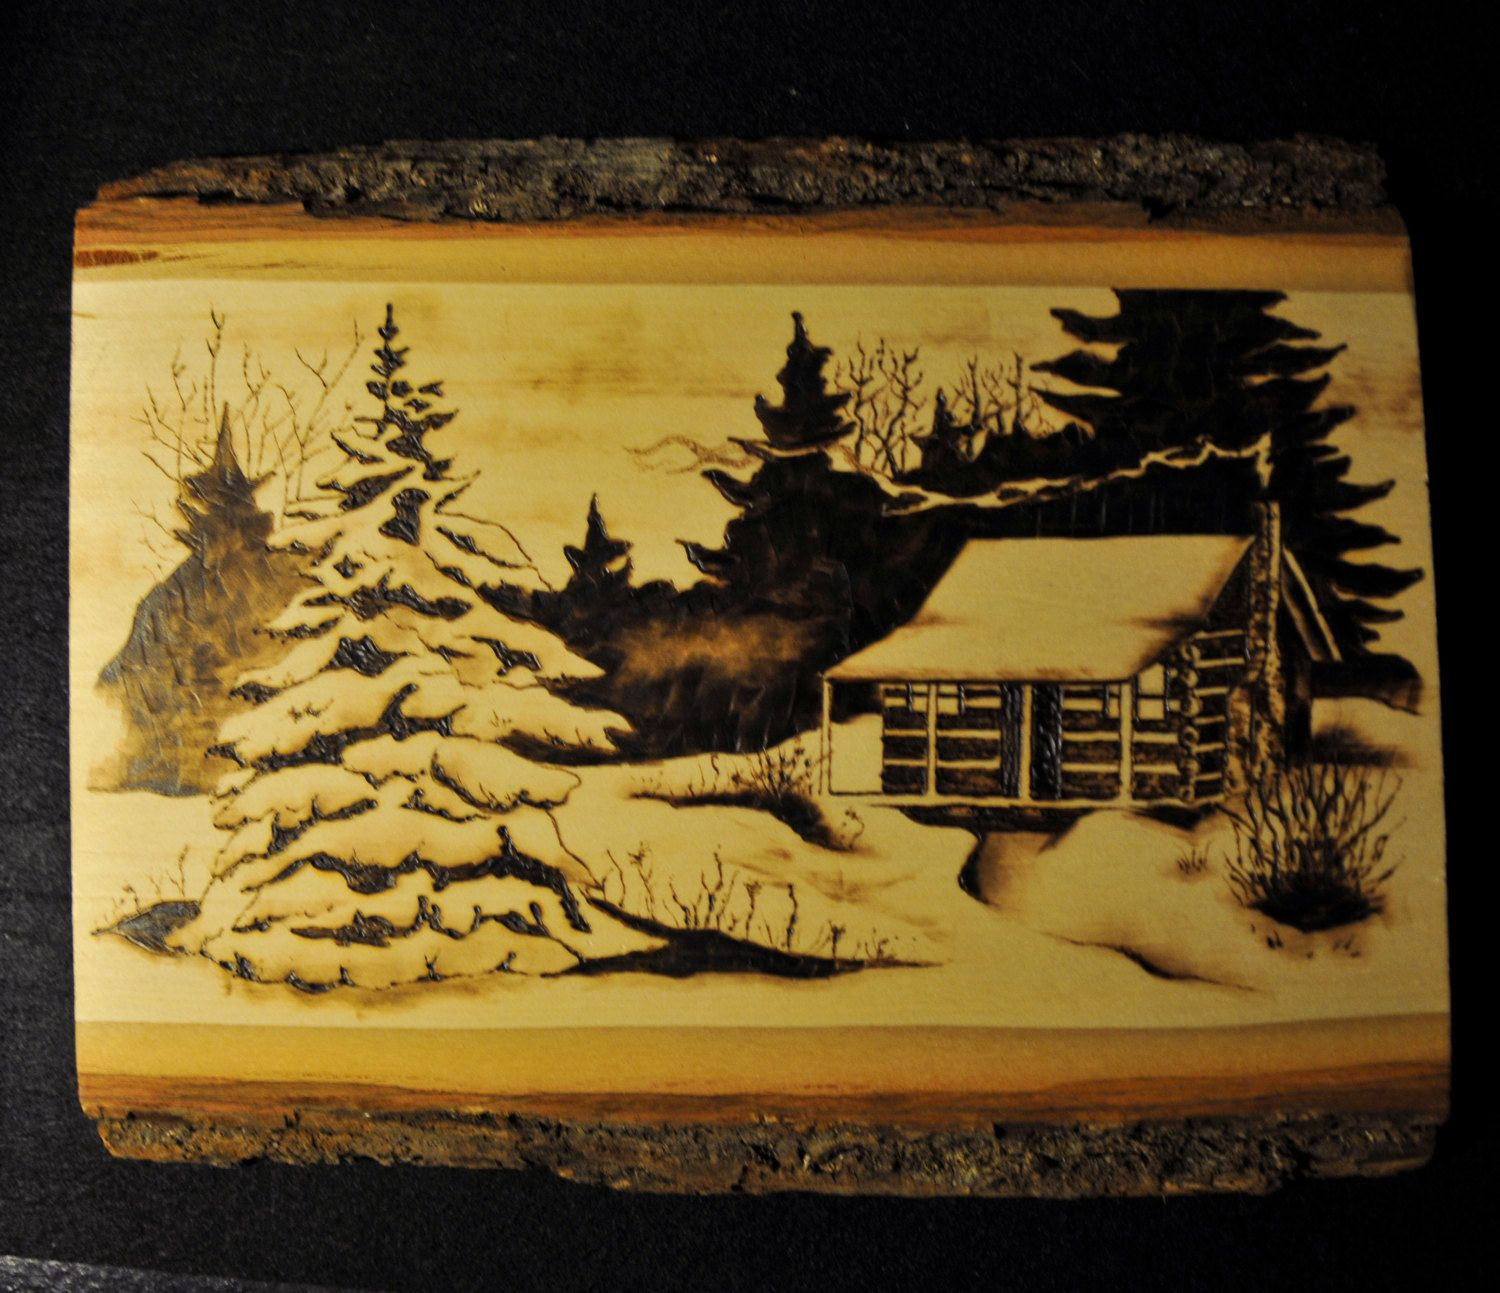 Hand Wood Burning Art One Of A Kind Hand Crafted